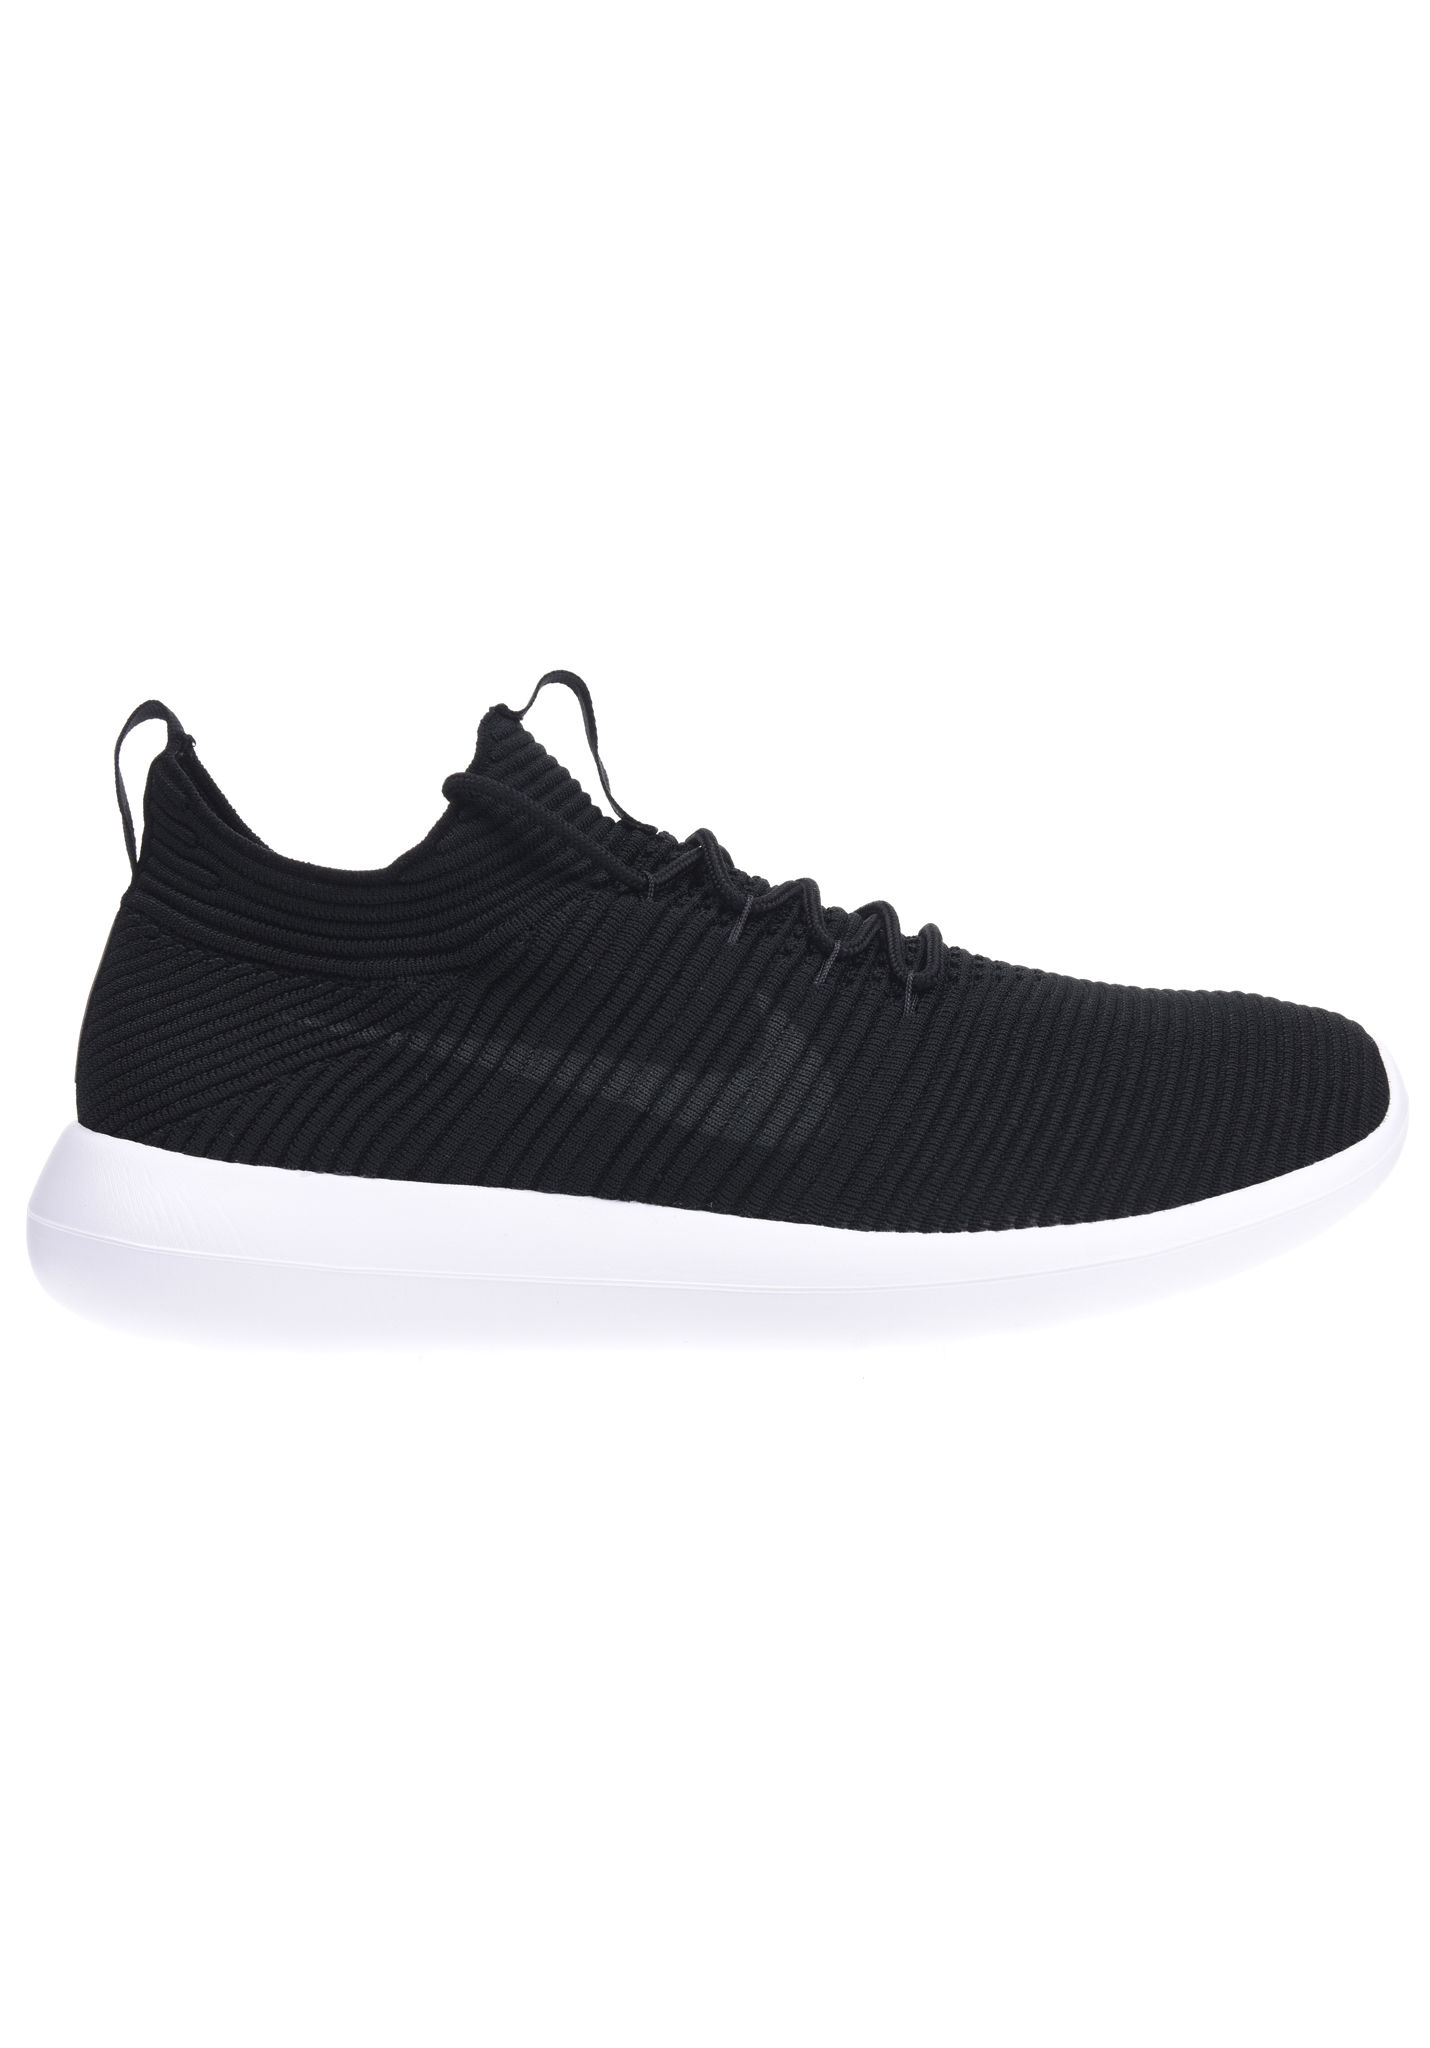 pretty nice 1eaa0 348a4 NIKE SPORTSWEAR Roshe Two Flyknit V2 - Sneakers for Men - Black - Planet  Sports